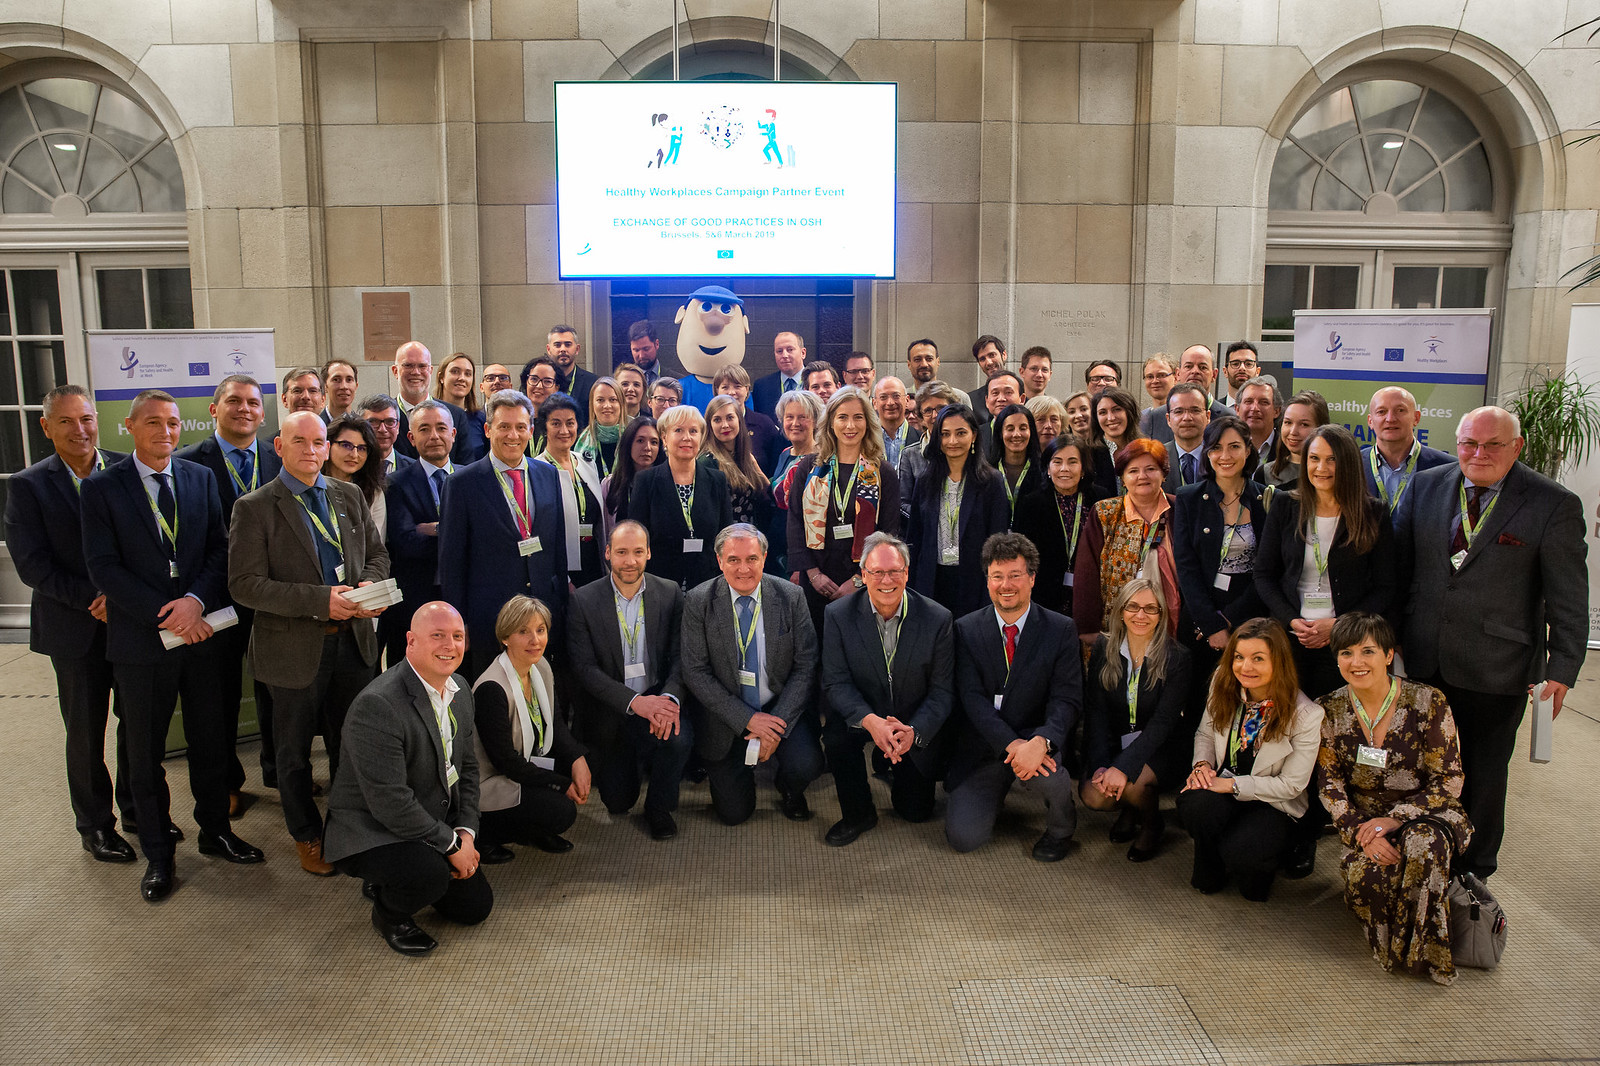 05/03/2019 - 22:54 - The Healthy Workplaces Campaign partner event took place on 5th and 6th of March 2019 in Brussels. The participants shared their experiences on a range of OSH-related subjects: Effective communication, Carcinogens - Multidisciplinary collaboration, Environment, Risk assessment. A special highlight was the ceremony on the occasion of the 10th anniversary of EU-OSHA's campaign partnership scheme and hand-over of certificates.